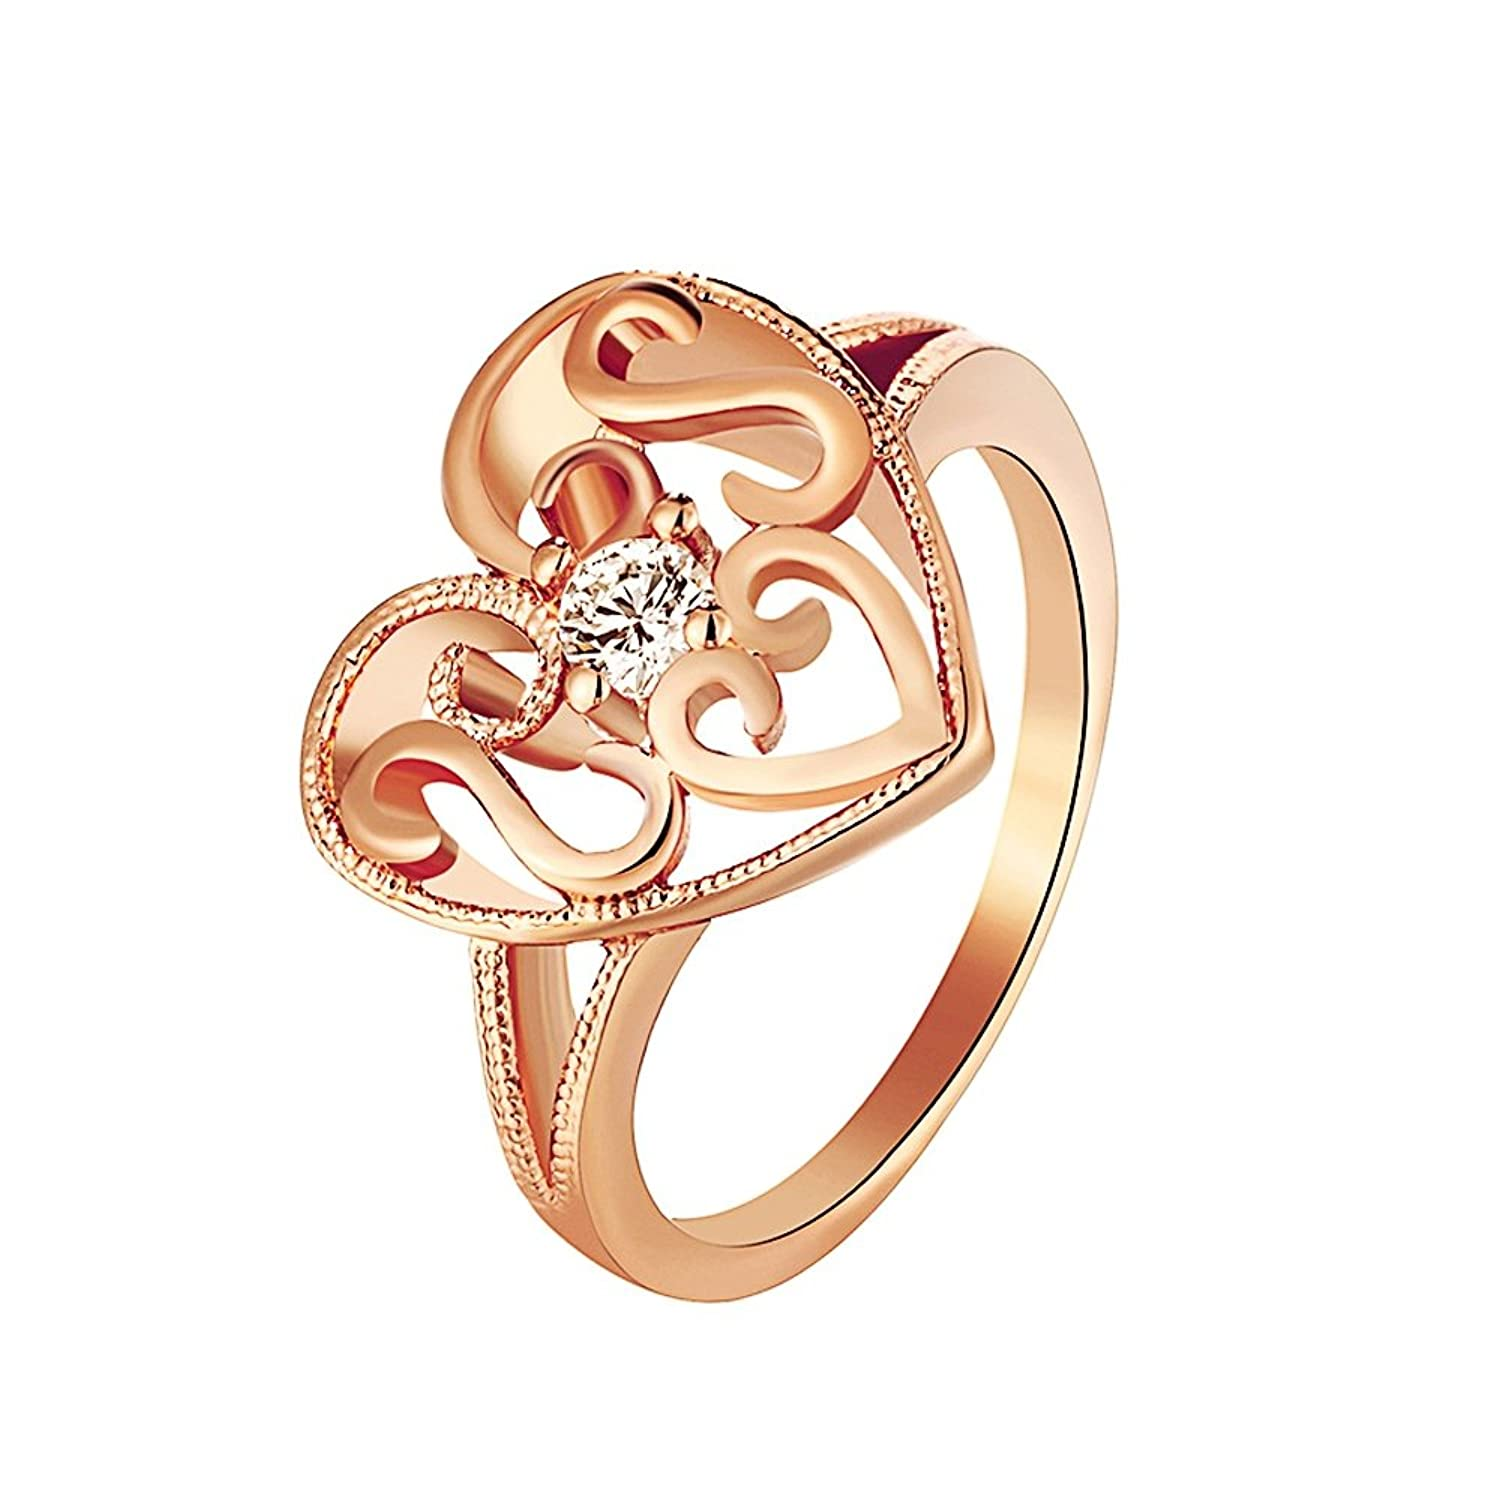 Laprapha Heart Ring Rose Gold Plated Jewelry Love Engagement Rings with White Stones for Women Anillos de Boda Aliexpress R100 | Amazon.com